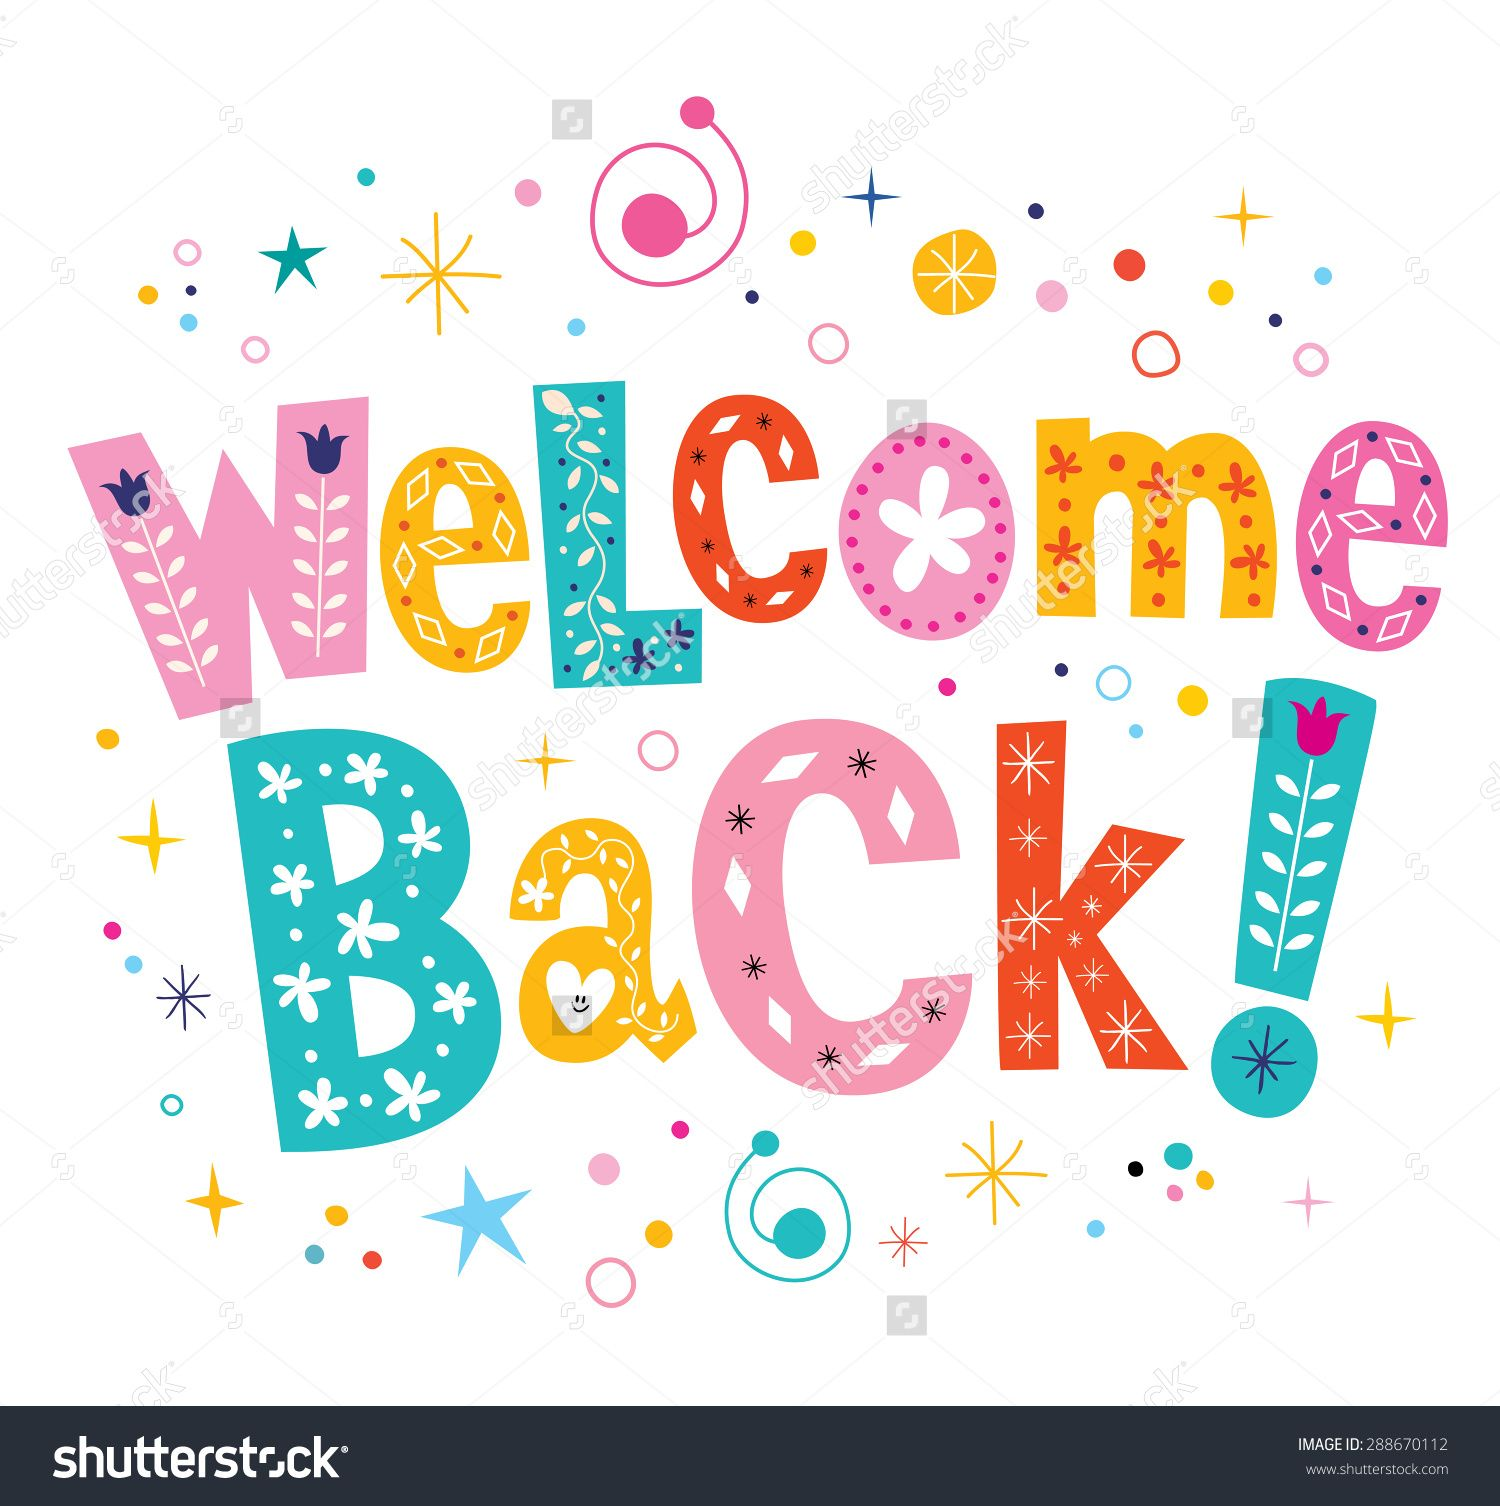 Welcome Welcome Back To The Classes Of 2014 2015 And 2016 The Faculty And Welcome Back Banner Welcome Home Banners Welcome Back To School